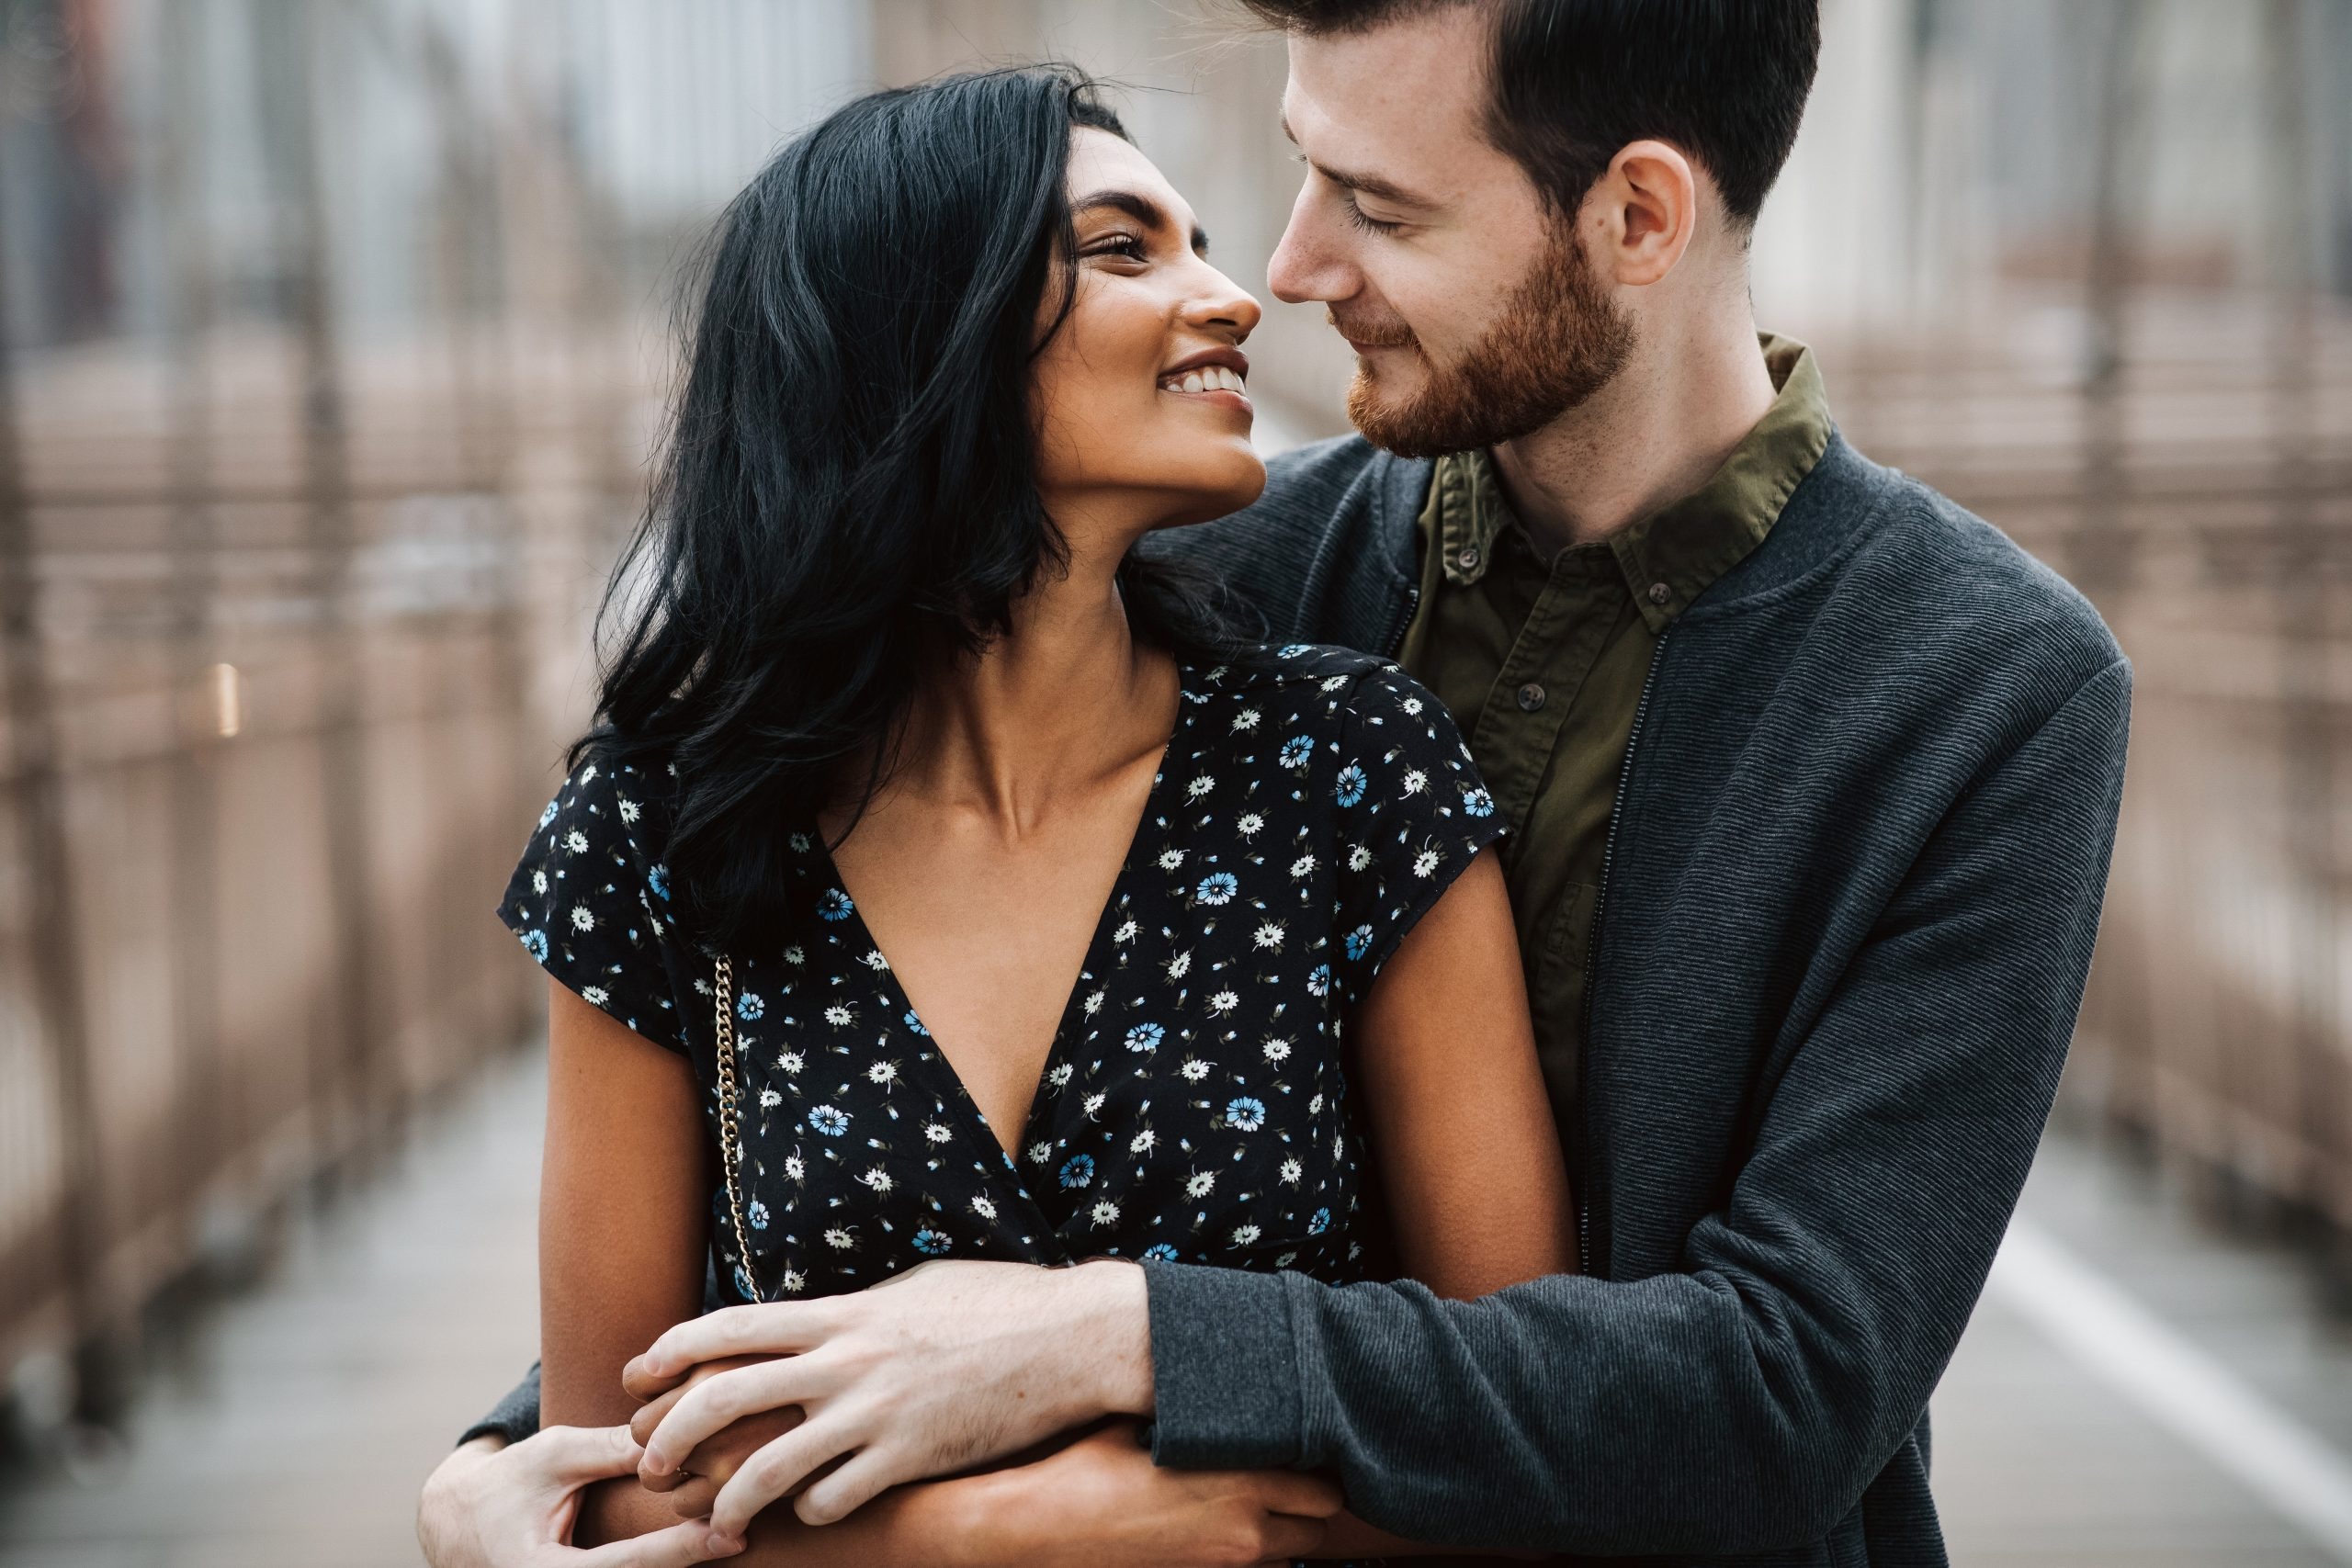 To woman attracted a man is a when Twenty Signs